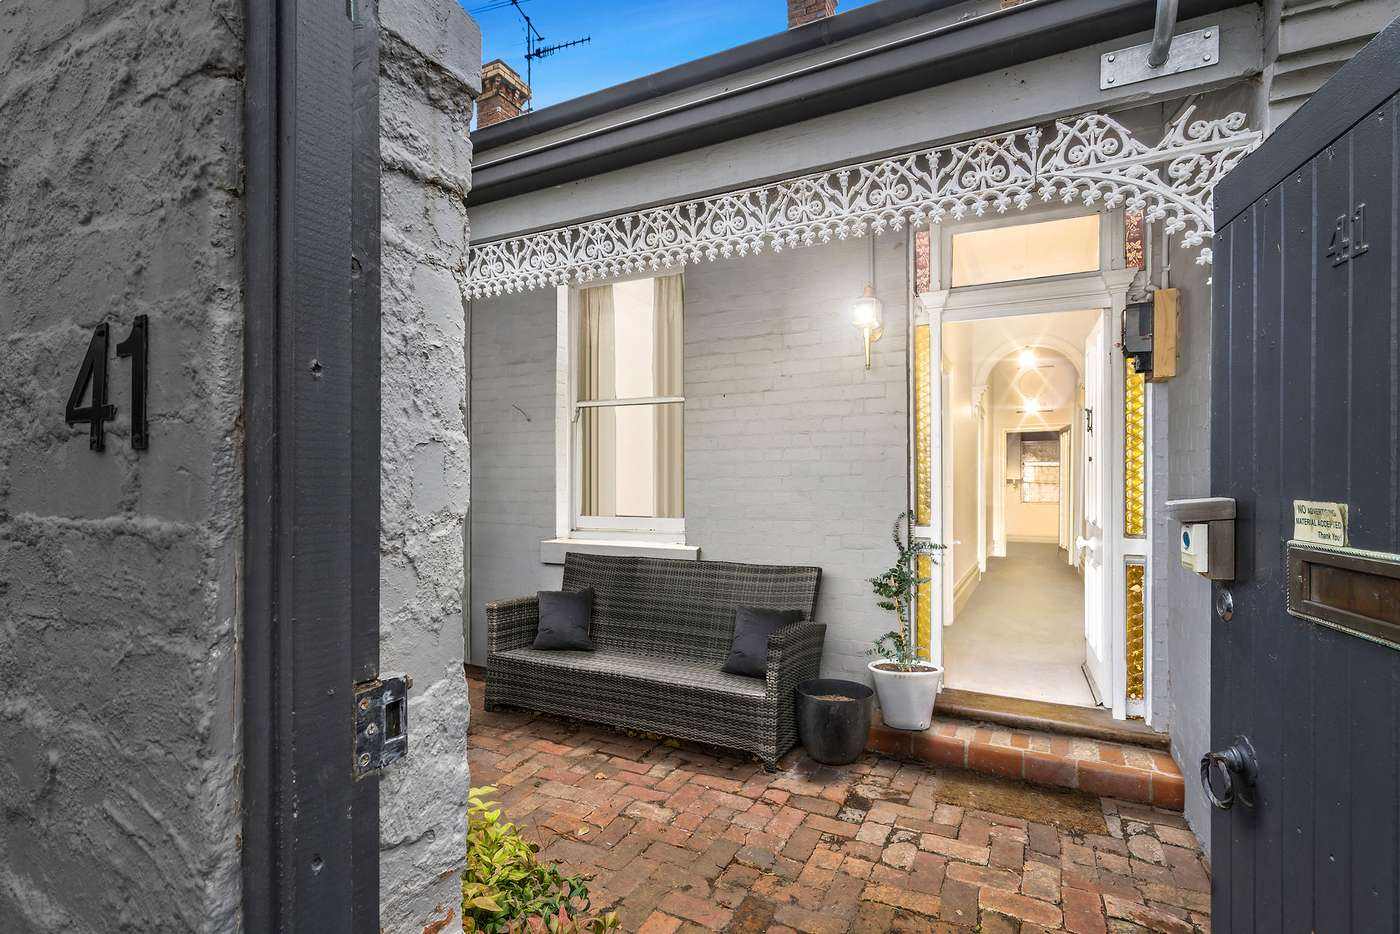 Main view of Homely house listing, 41 Hornby Street, Prahran VIC 3181